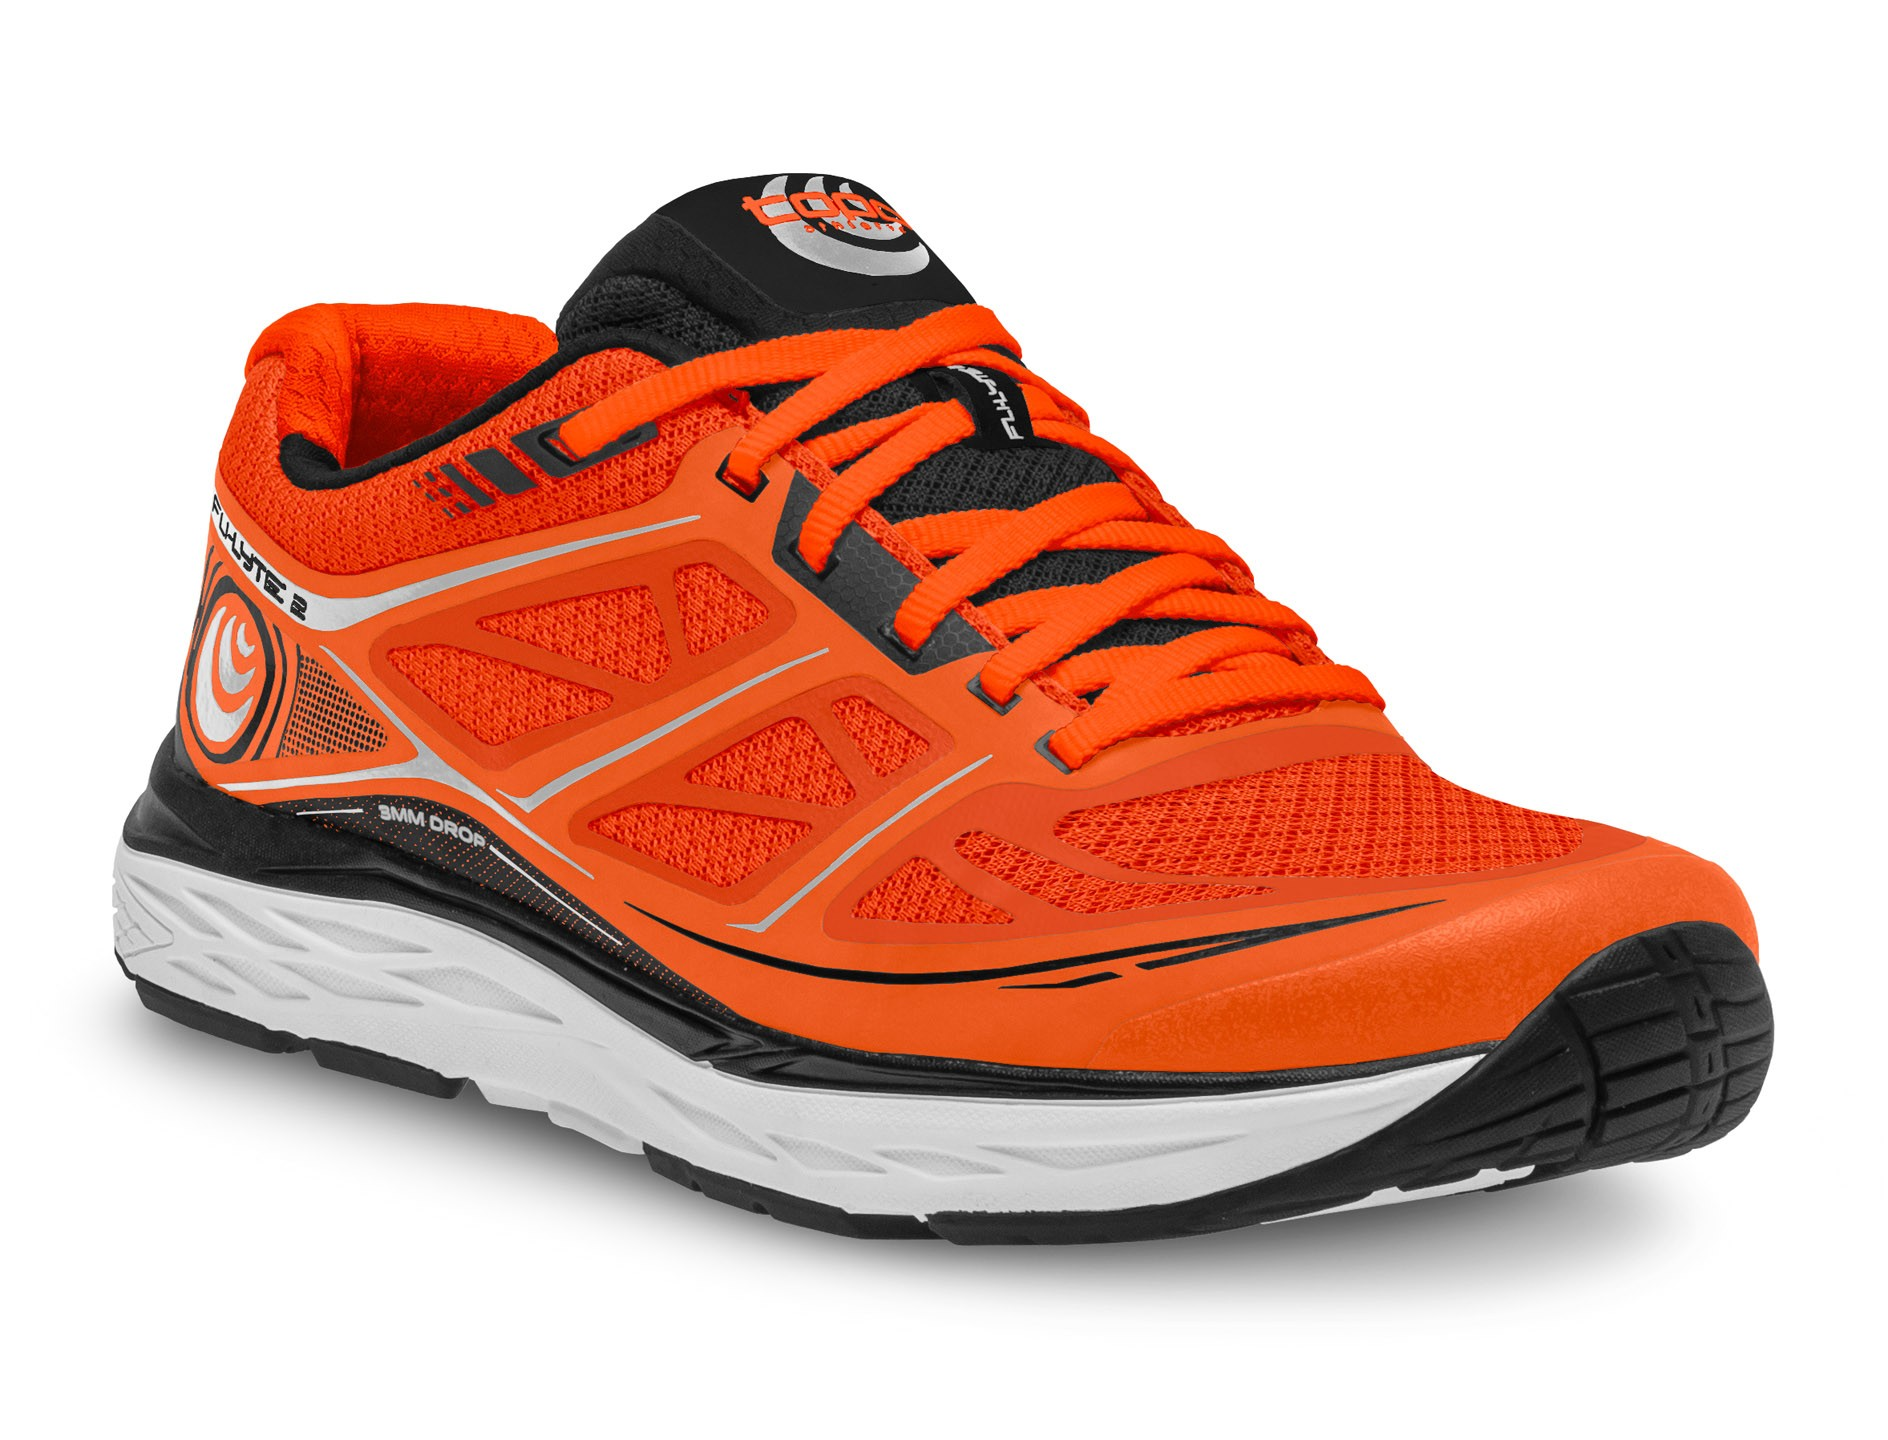 Competitor - Fli-Lyte 2